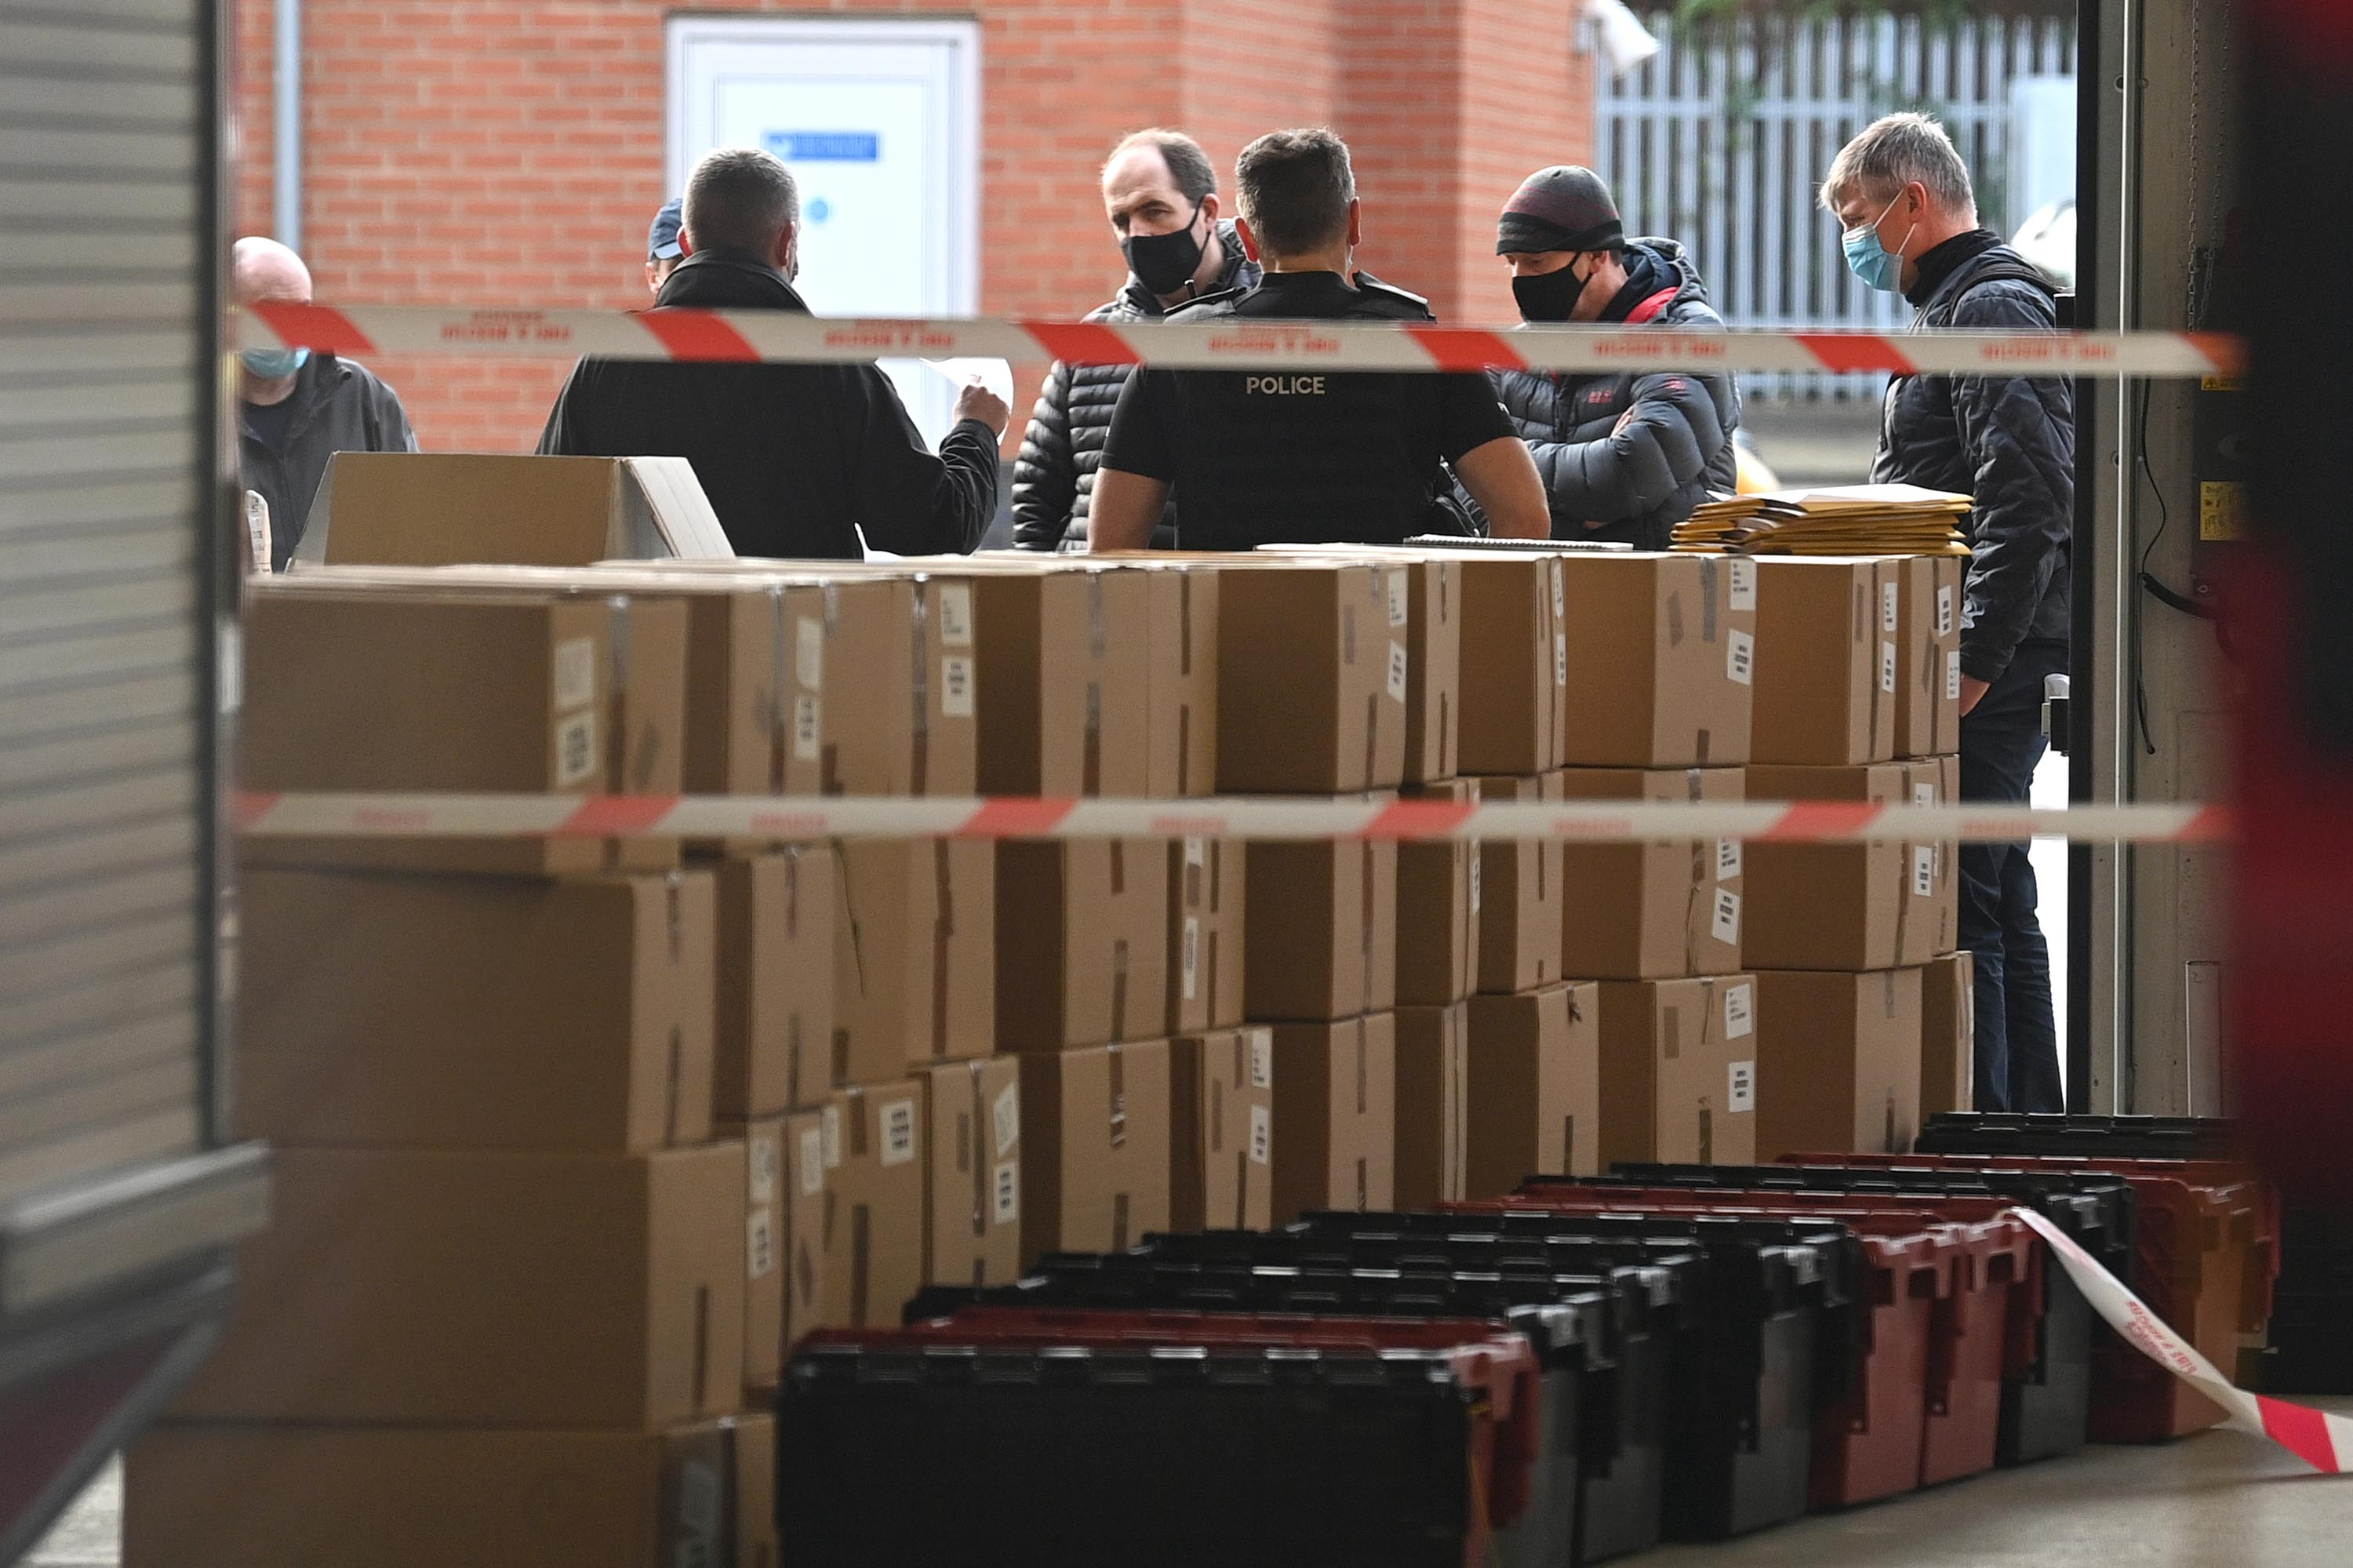 Stock of test kits is pictured at Woking fire station as local authorities prepare to deploy Covid-19 testing in an effort to track down a South African coronavirus variant found in the area.